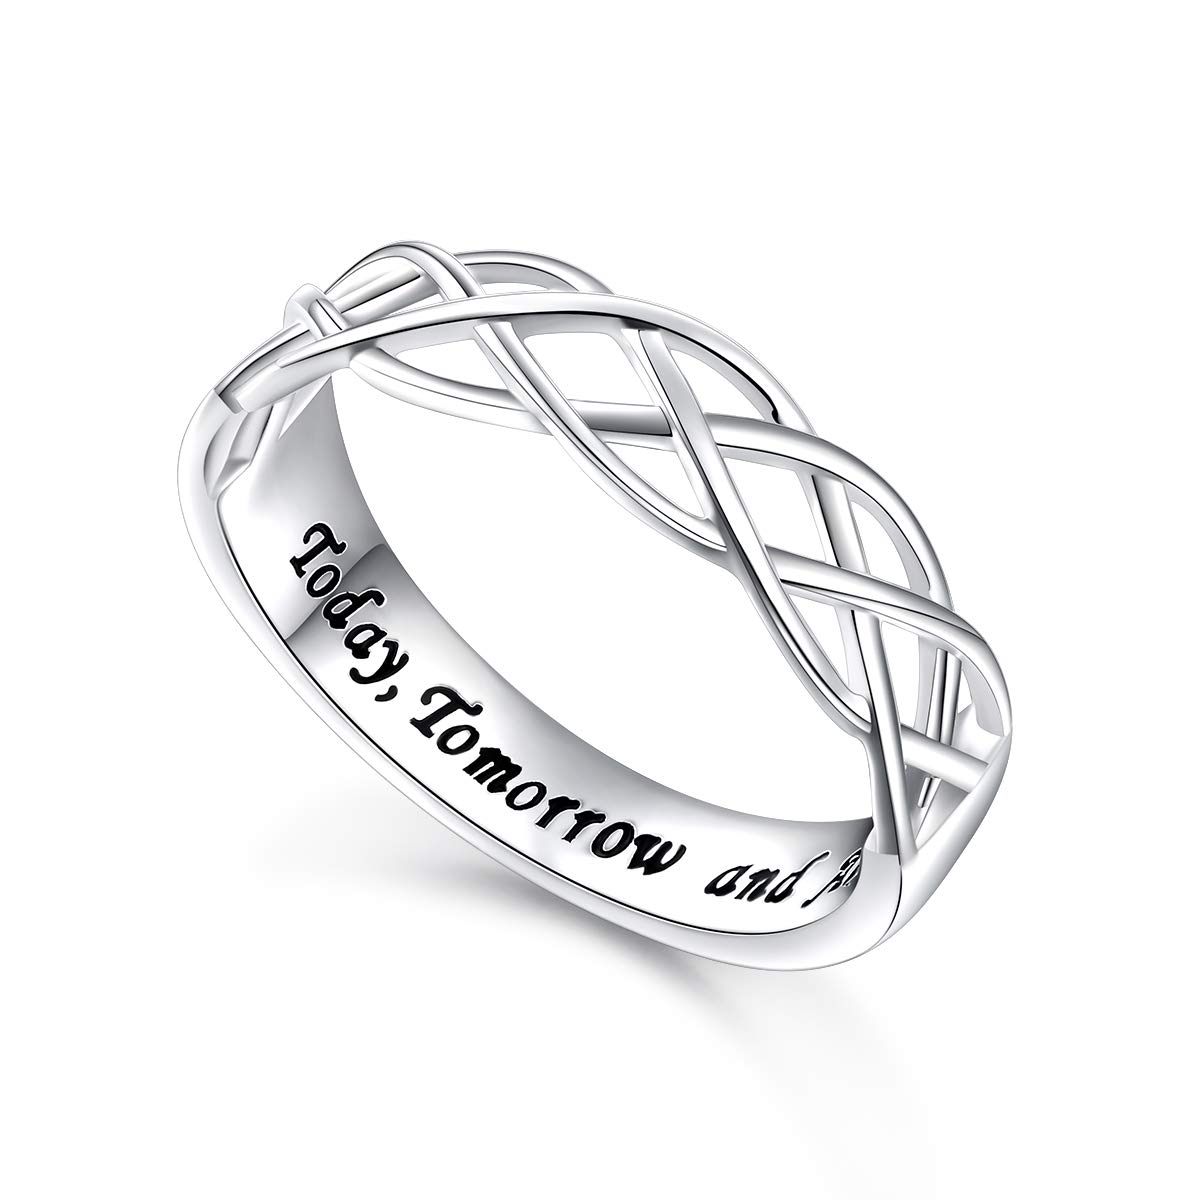 Flyow Wedding Ring Sterling Silver Engraved Today Tomorrow Always Celtic Lover Engagement Ring, Size 6-8 (8)